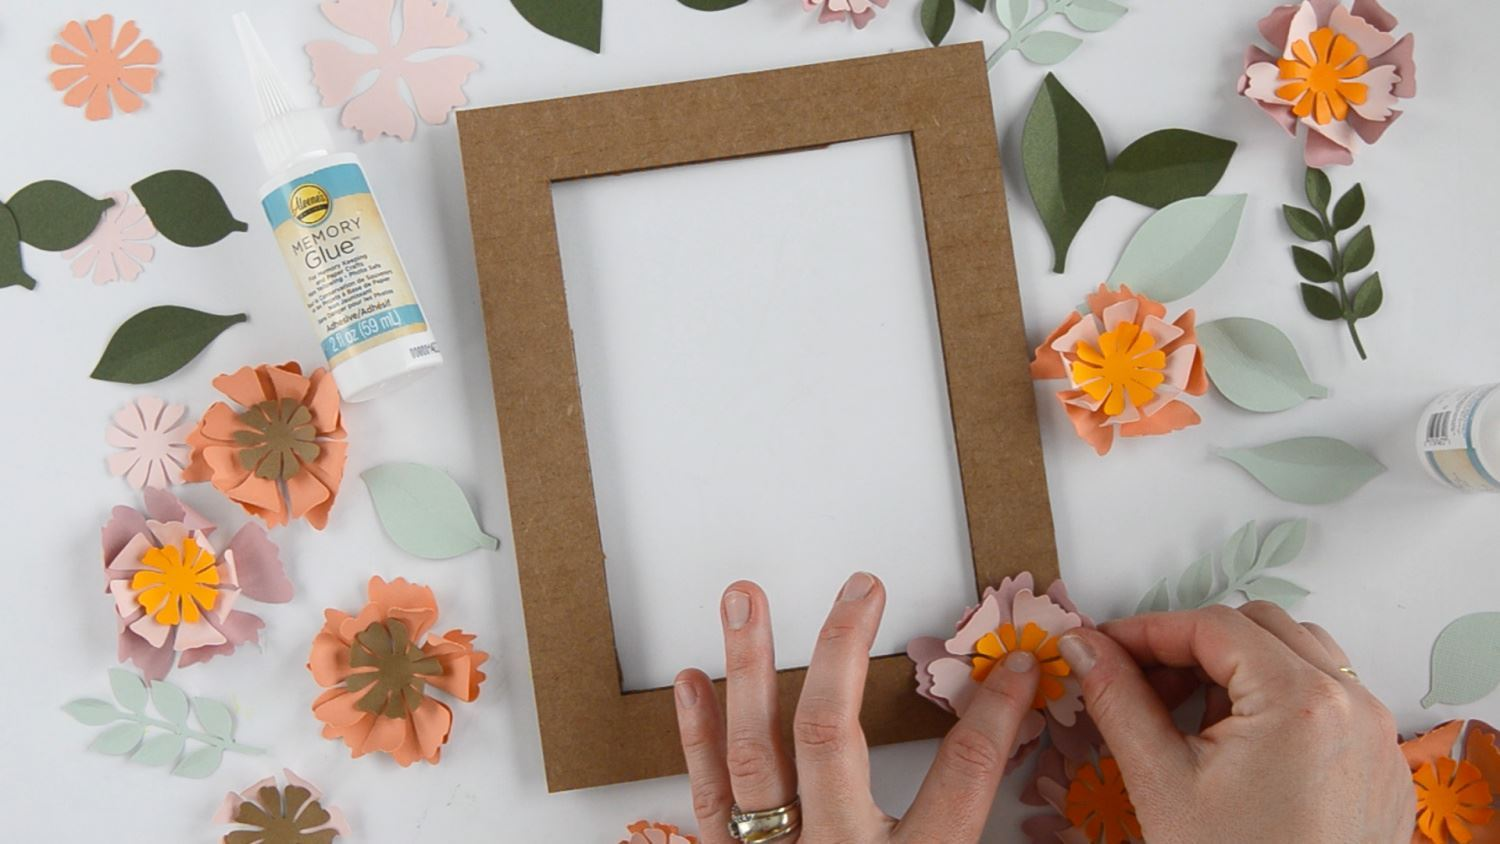 Practice arranging flowers before gluing on frame